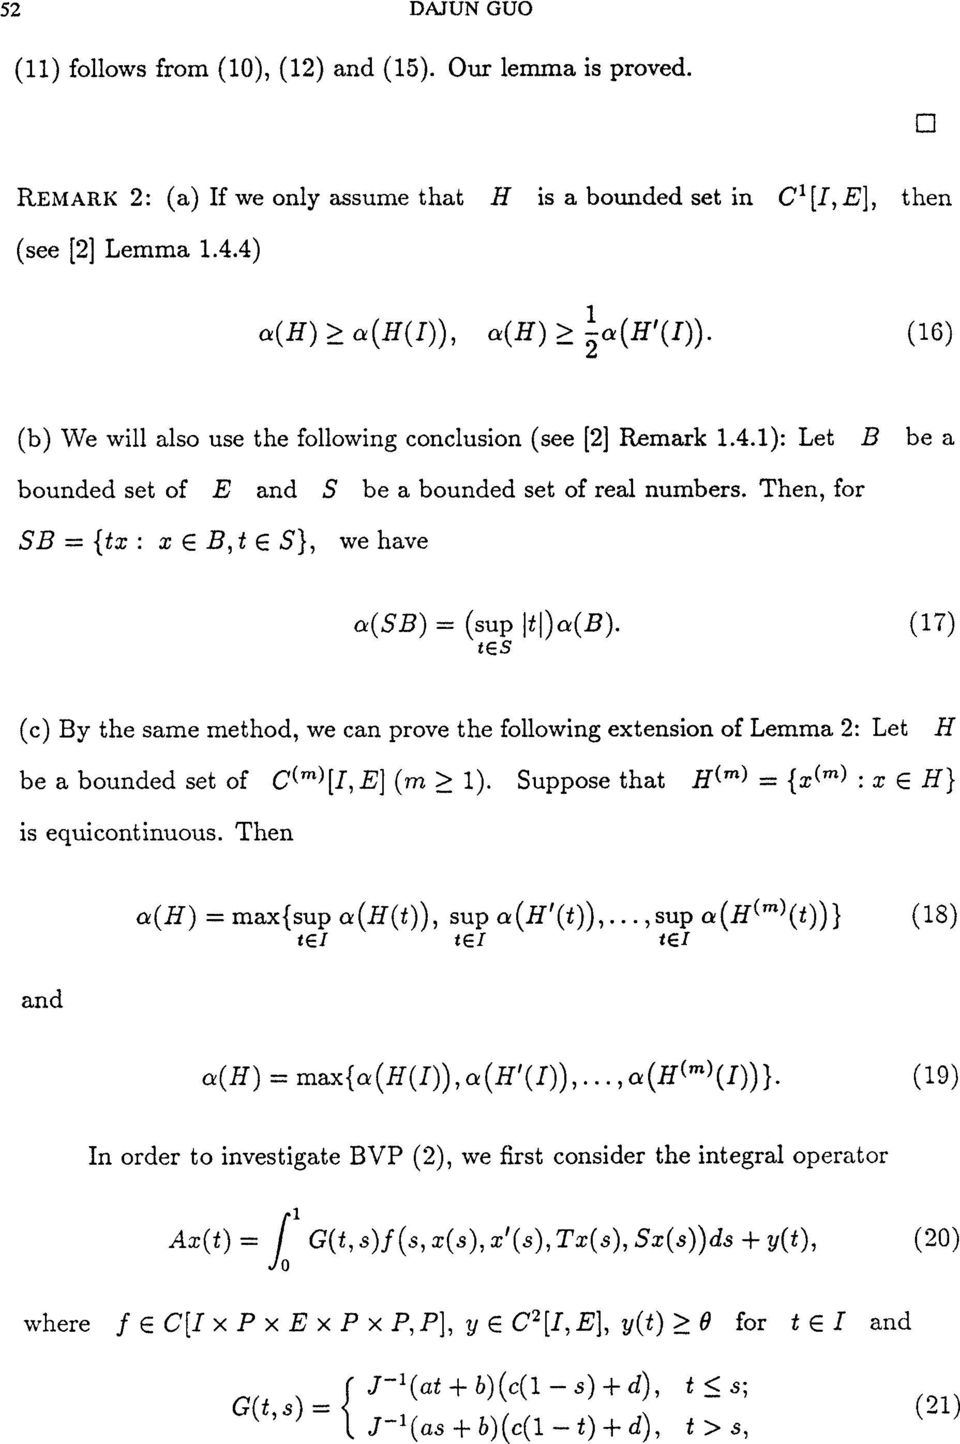 "Then, for SB = {tx x B,t S}, we have (7) (c) By the same method, we can prove the following extension of Lemma 2"" Let H be a bounded set of c(m)[i,e] (m > 1)."